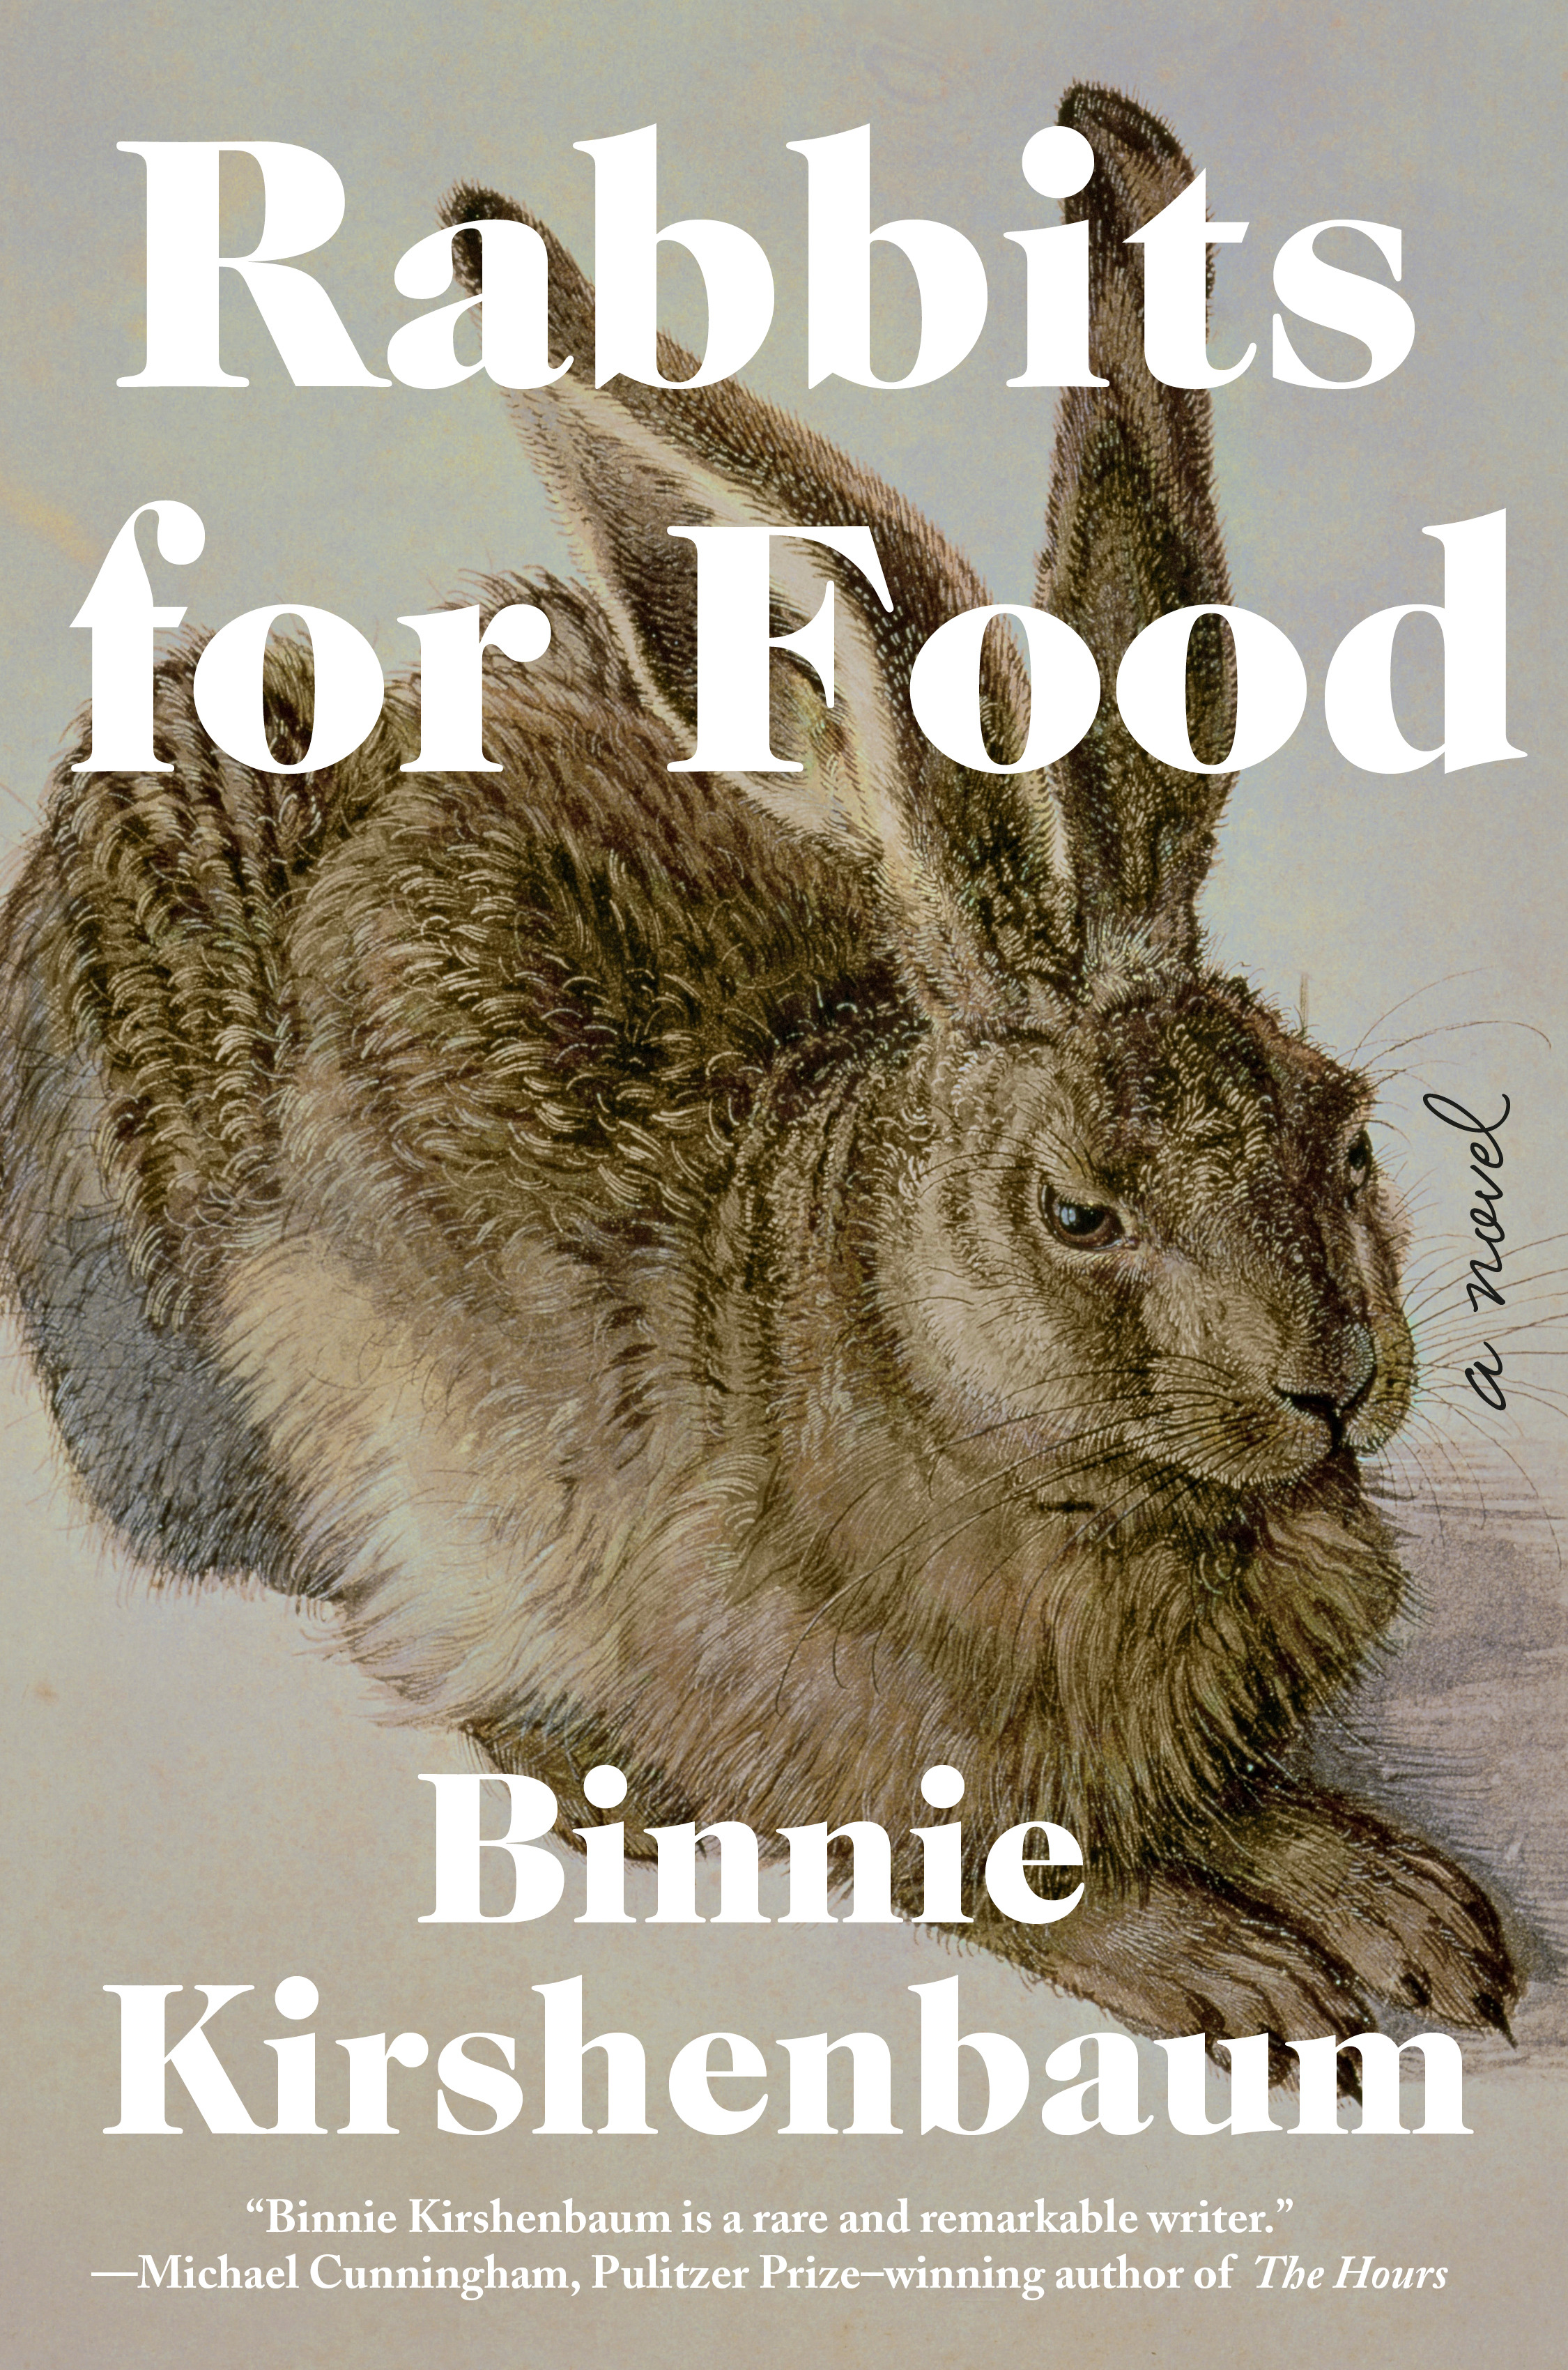 """Forthcoming May 7, 2019 - Master of razor-edged literary humor Binnie Kirshenbaum returns with her first novel in a decade, a devastating, laugh-out-loud funny story of a writer's slide into depression and institutionalization.It's New Year's Eve, the holiday of forced friendship, mandatory fun, and paper hats. While dining out with her husband and their friends, Kirshenbaum's protagonist—an acerbic, mordantly witty, and clinically depressed writer—fully unravels. Her breakdown lands her in the psych ward of a prestigious New York hospital where she refuses all modes of recommend treatment. Instead, she passes the time chronicling the lives of her fellow """"lunatics"""" and writing a novel about how she got to this place. Her story is a hilarious and harrowing deep dive into the disordered mind of a woman who sees the world all too clearly.Propelled by stand-up comic timing and rife with pinpoint insights, Kirshenbaum examines what it means to be unloved and loved, to succeed and fail, to be at once impervious and raw. Rabbits for Food shows how art can lead us out of—or into—the depths of disconsolate loneliness and piercing grief. A bravura literary performance from one of our most witty and indispensable writers."""